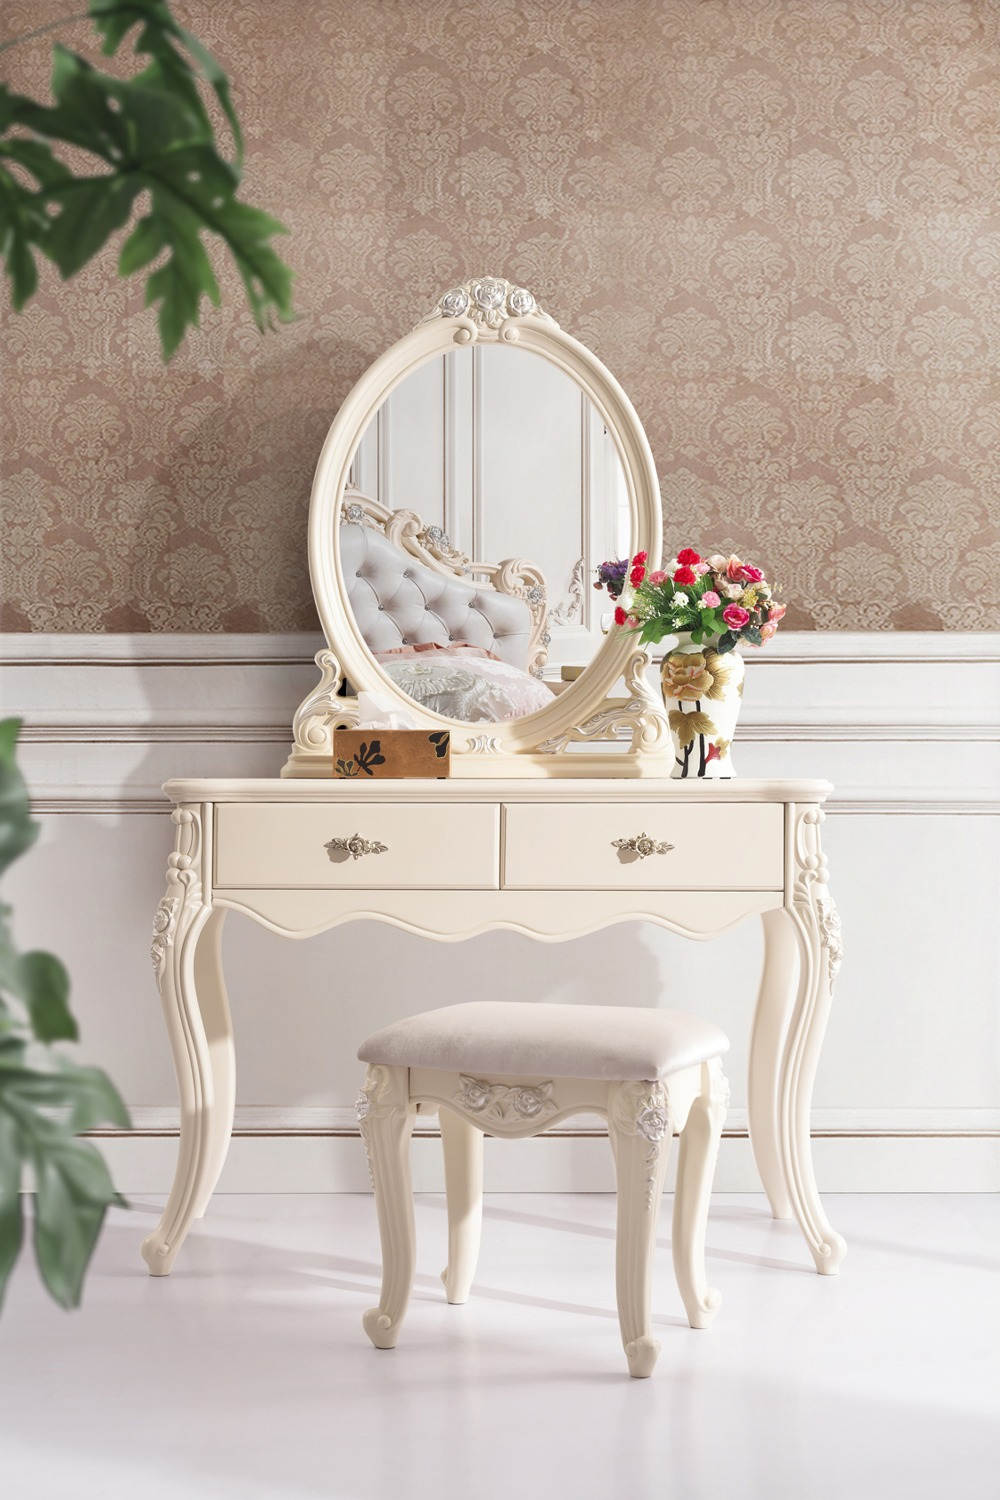 Dresser with mirror and chair - Modern Bedroom Set High Class European Style Dressing Table Dresser With Stool Chair Hand Carved Solid Wood Bedroom Furniture